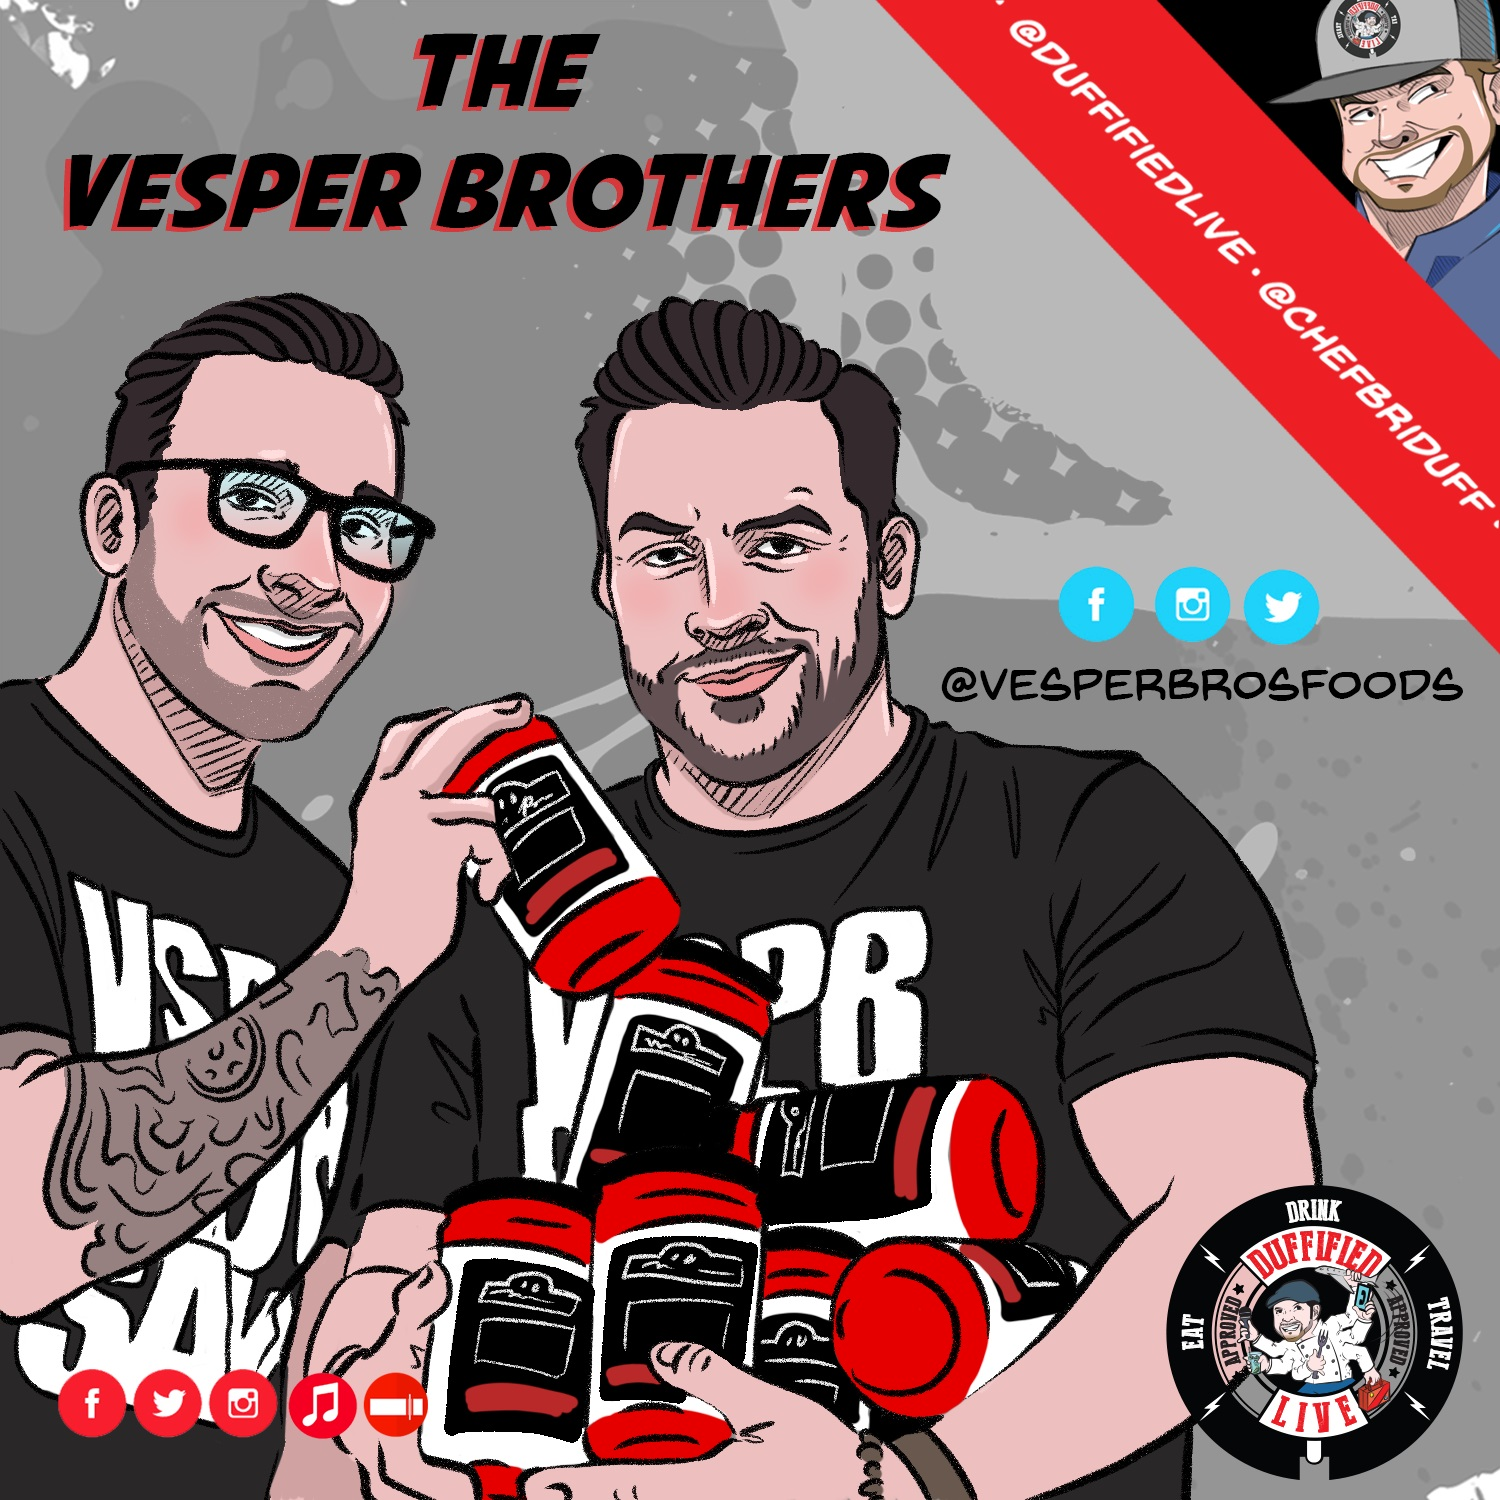 The Vesper Brothers